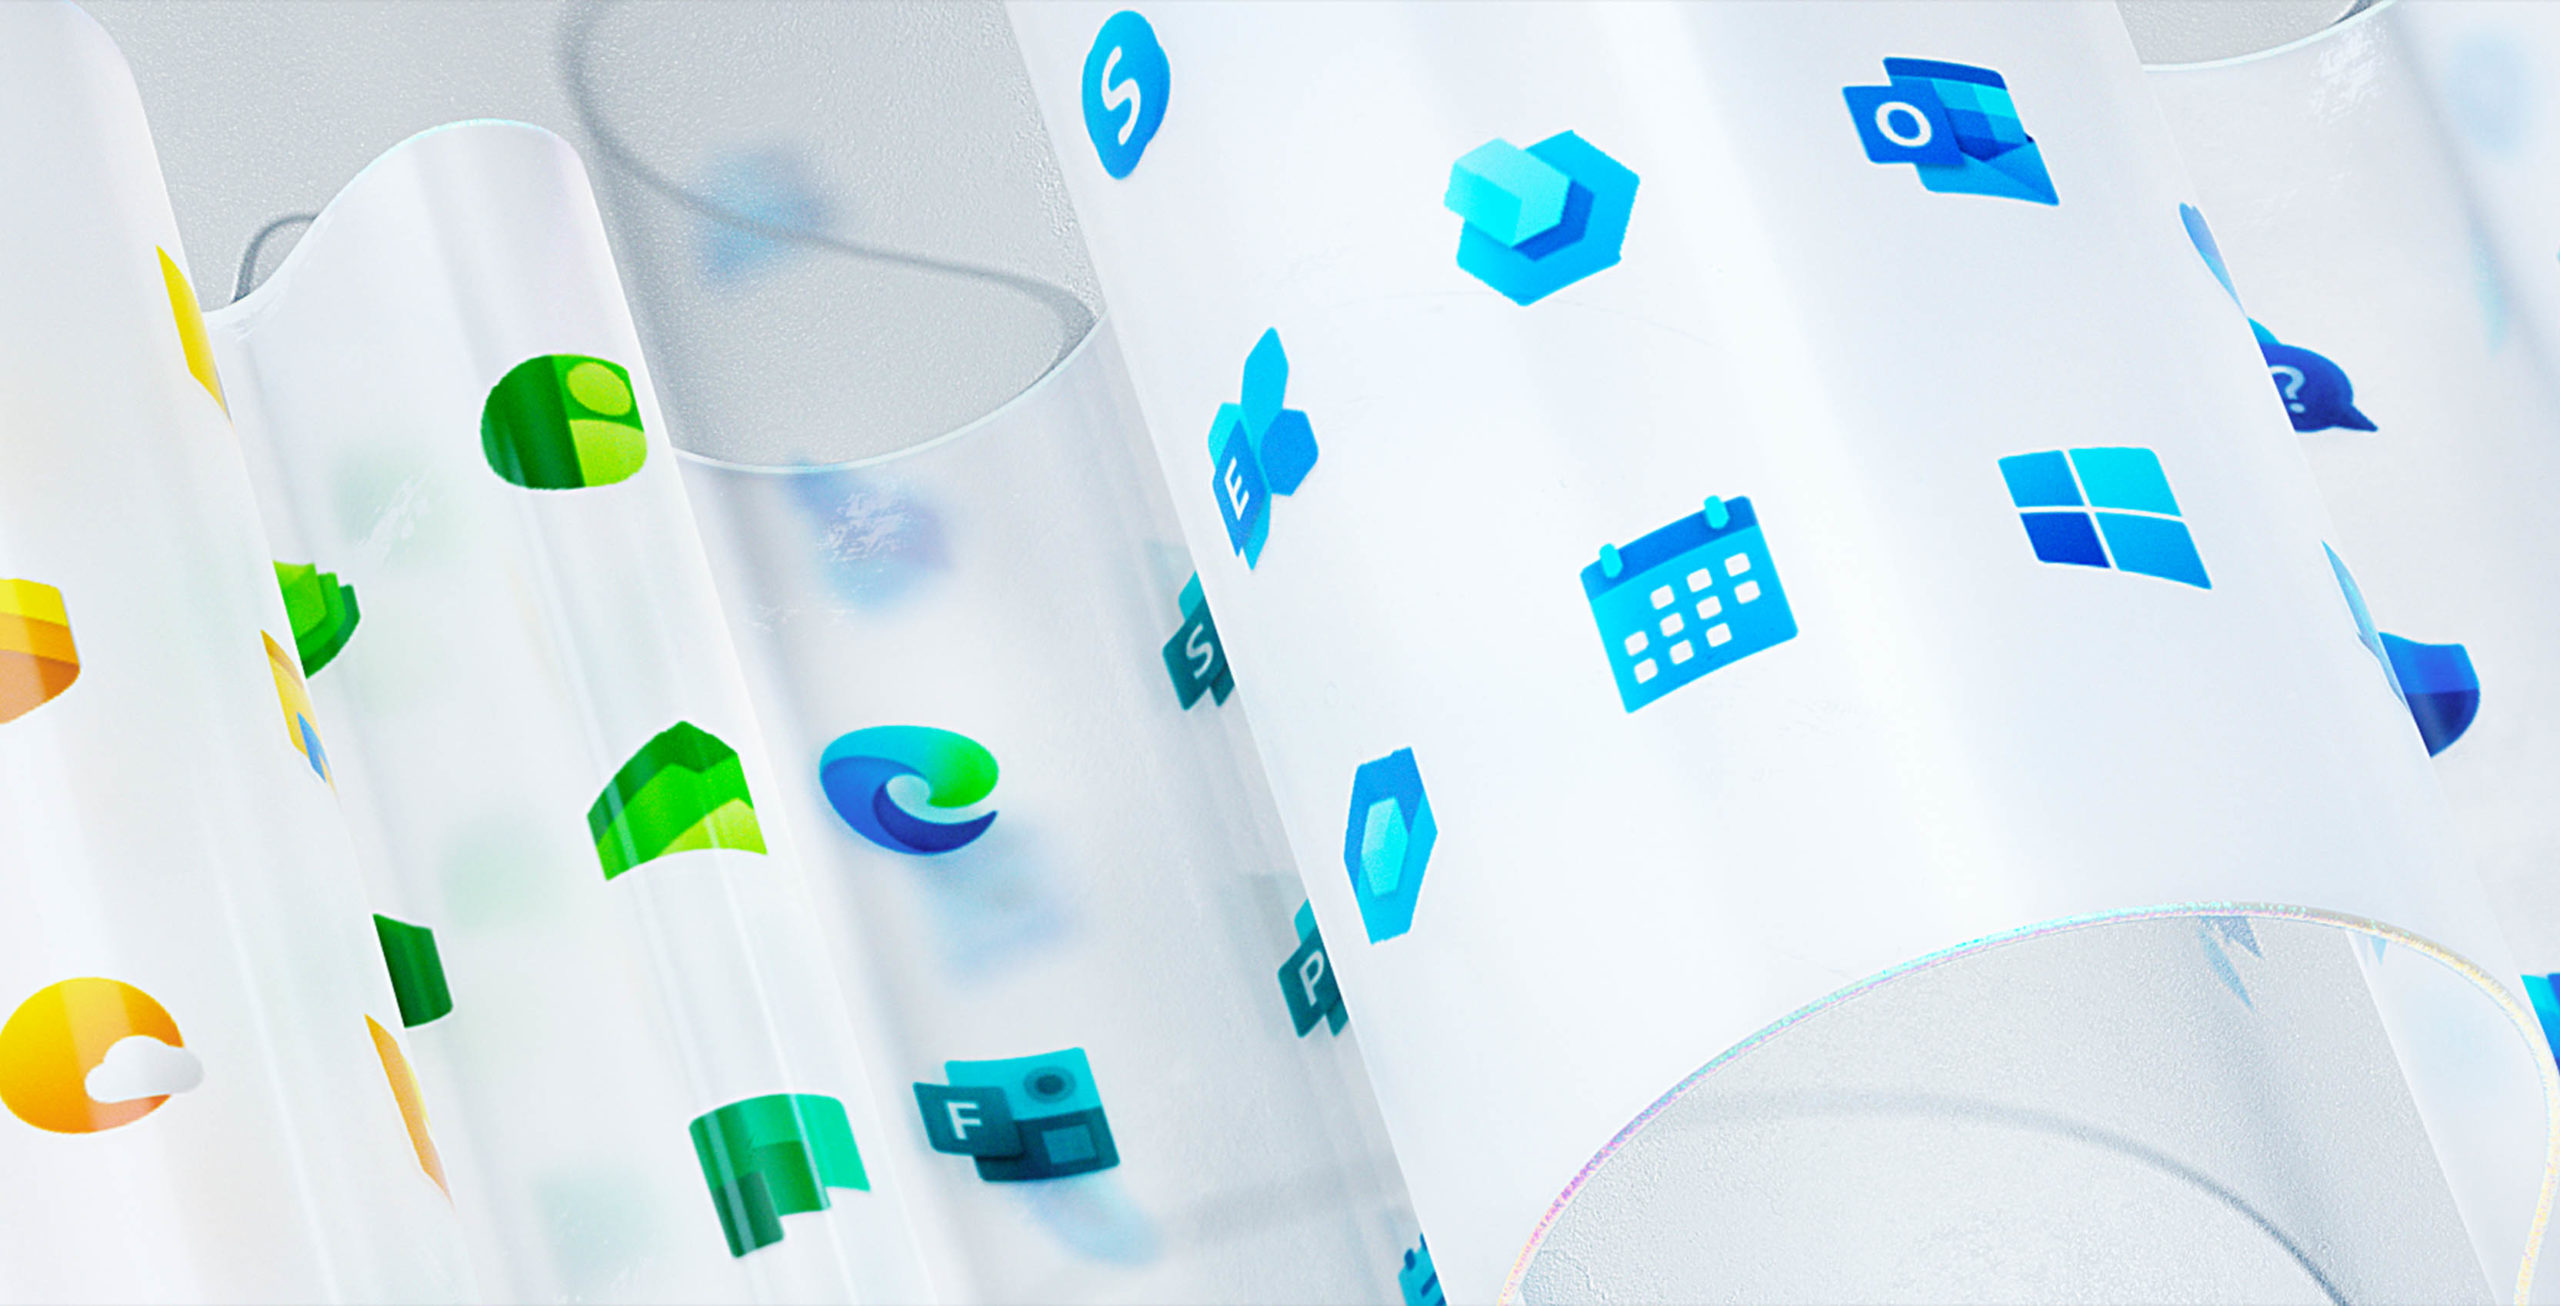 Microsoft unveils new Windows icons as it works to modernize apps